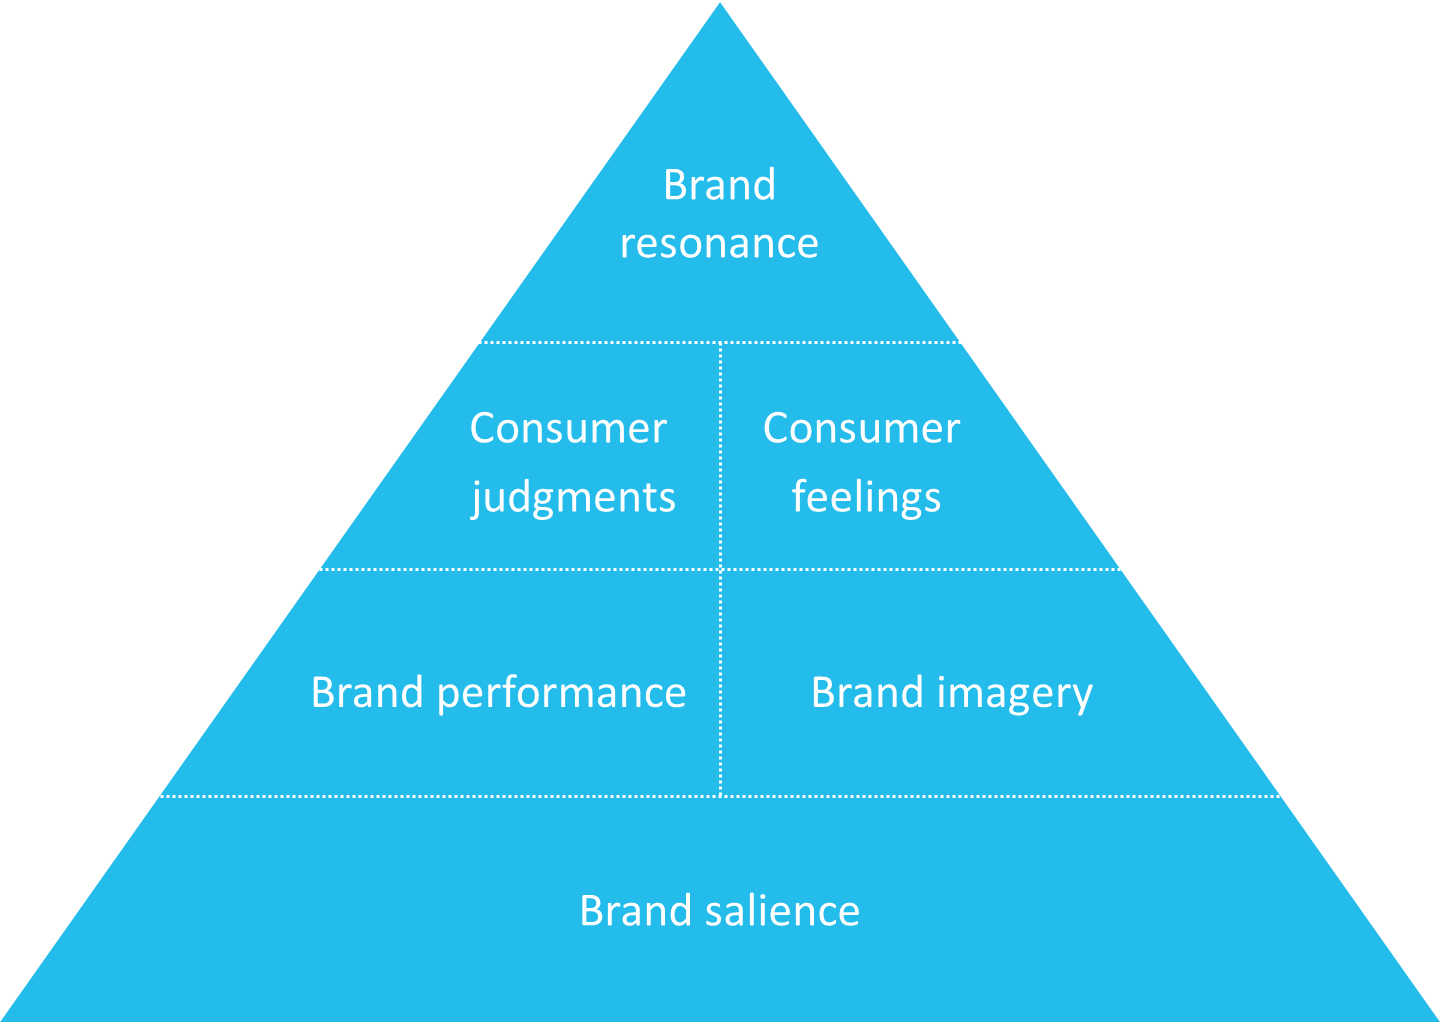 customer-based-brand-equity-model-figuur-1